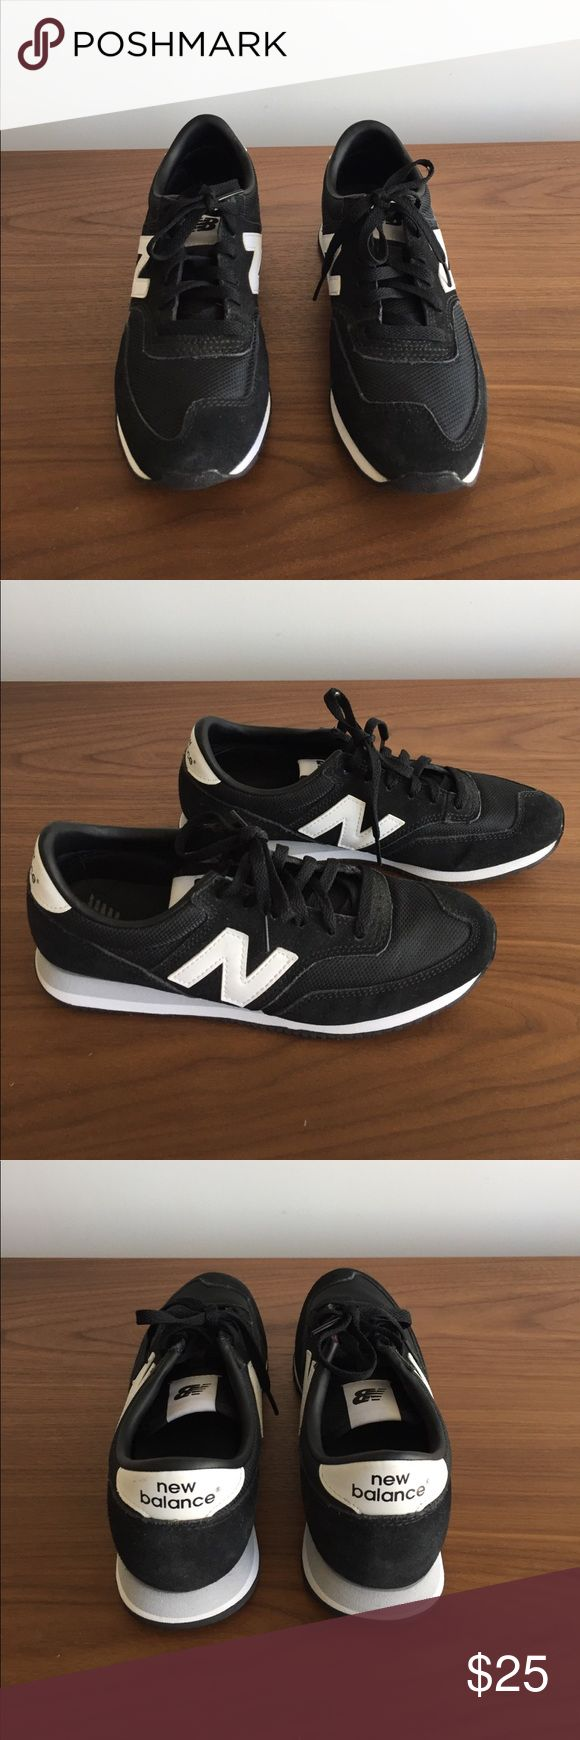 New Balance Sneakers Black with White 8 New Balance New Balance Shoes Sneakers